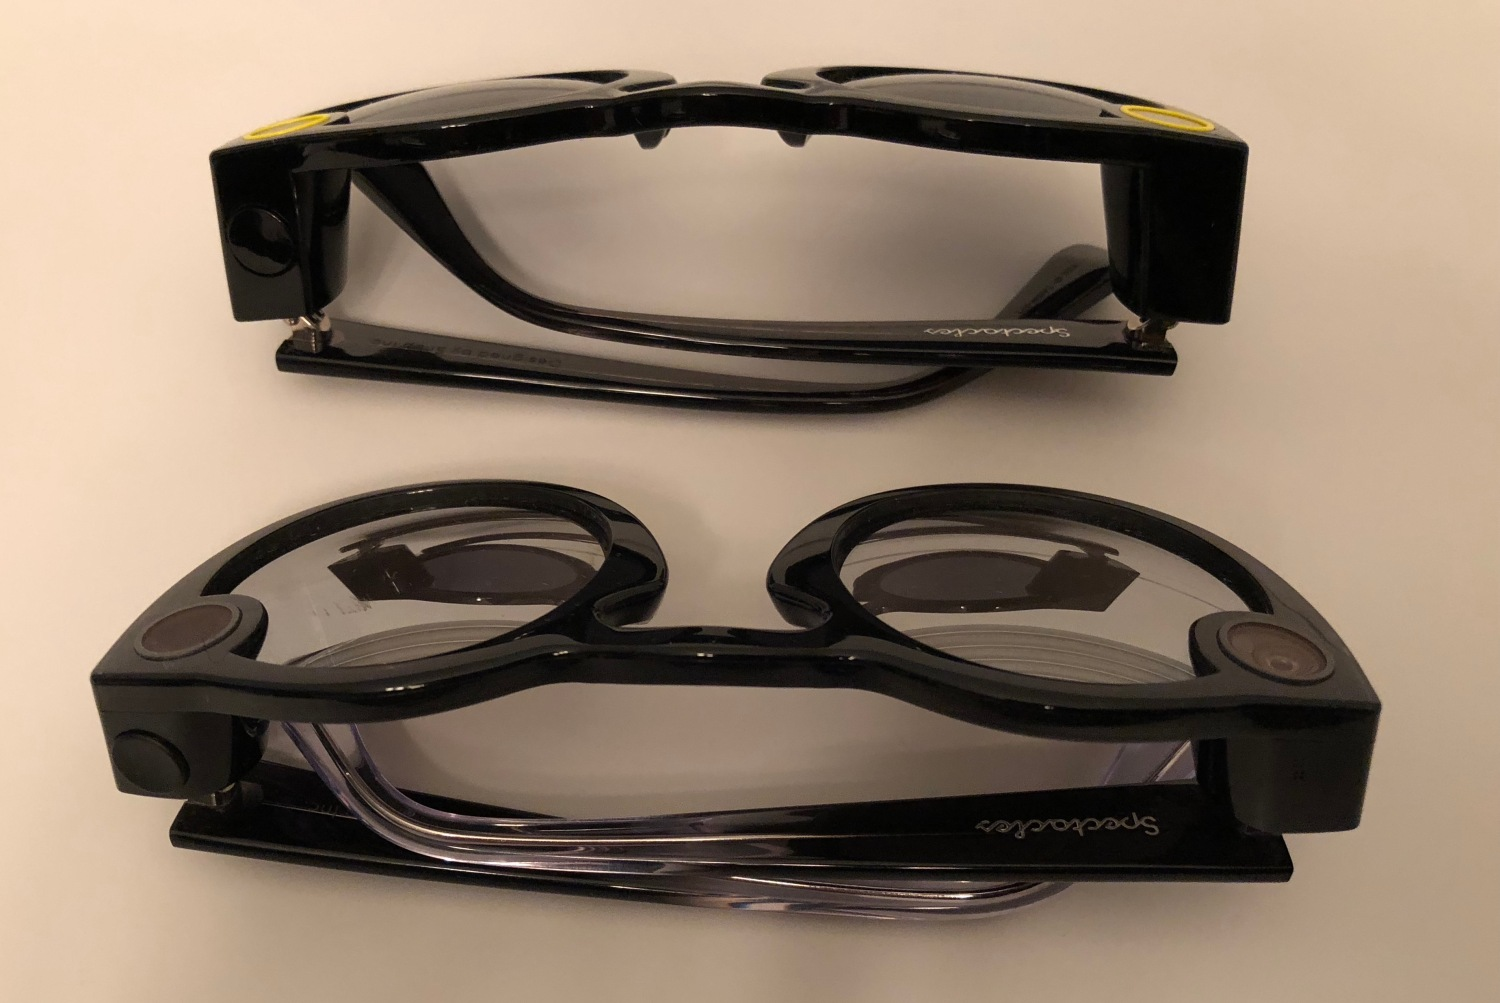 f5328c230c1 Snapchat Spectacles hardware v1 vs v2